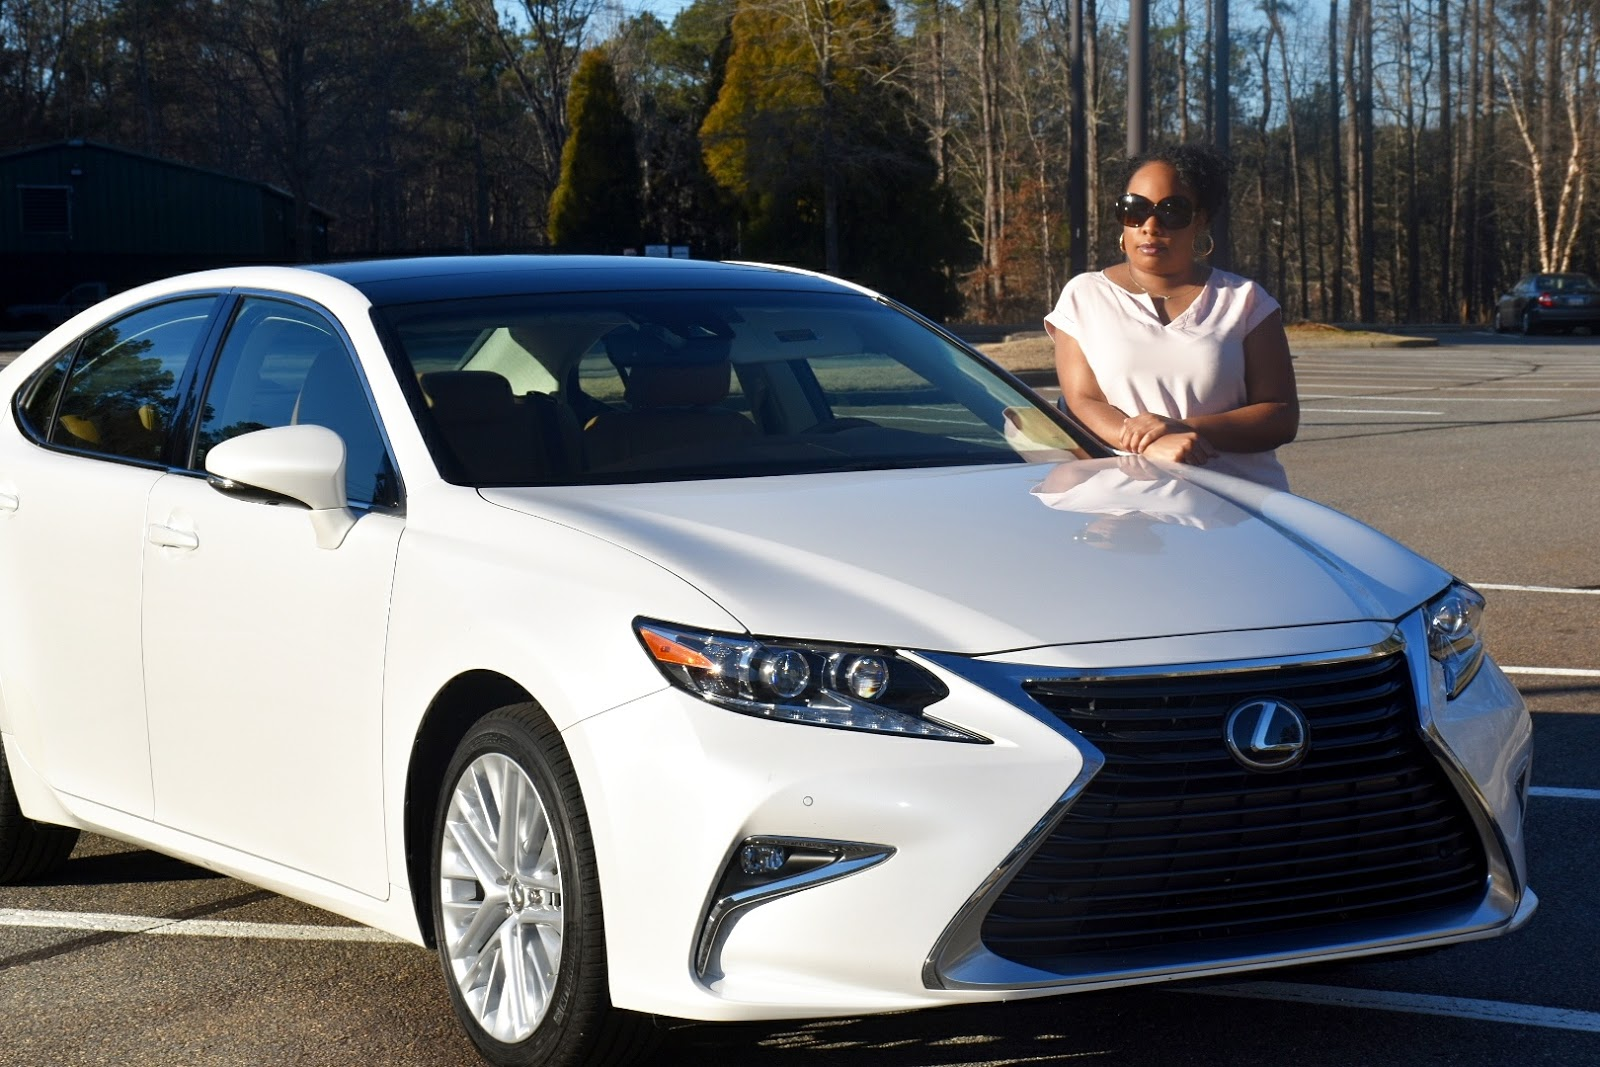 Experience Amazing 2017 Lexus Es350 Review Plus Black Panther Movie Review